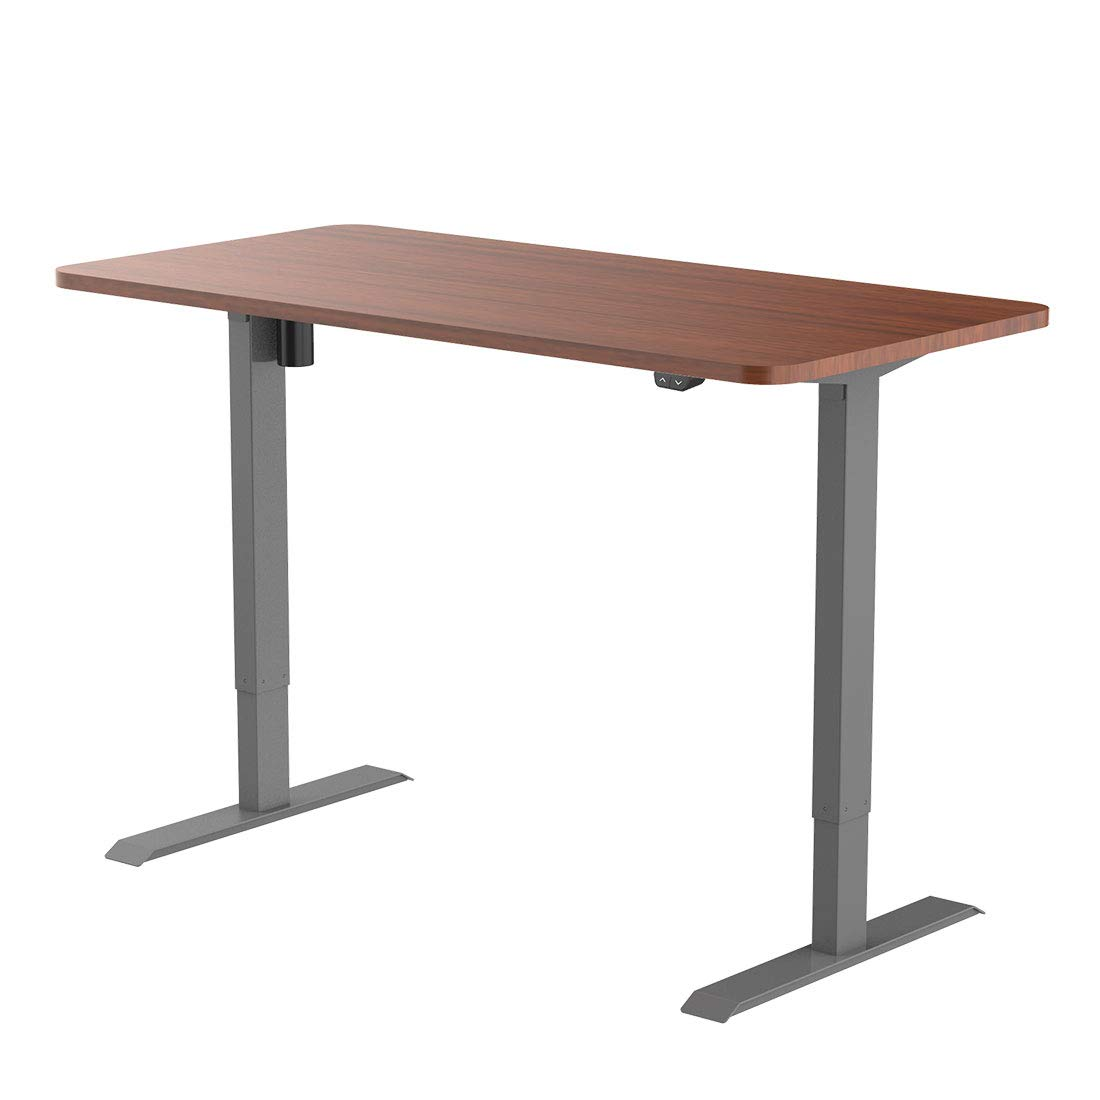 Flexispot EC1S-R4830N Electric Height Adjustable Desk Sit Stand Desk, 48 x 30 Inches, Home Office Table Stand up Desk(Gray Frame + 48 in Mahogany Top) by FLEXISPOT